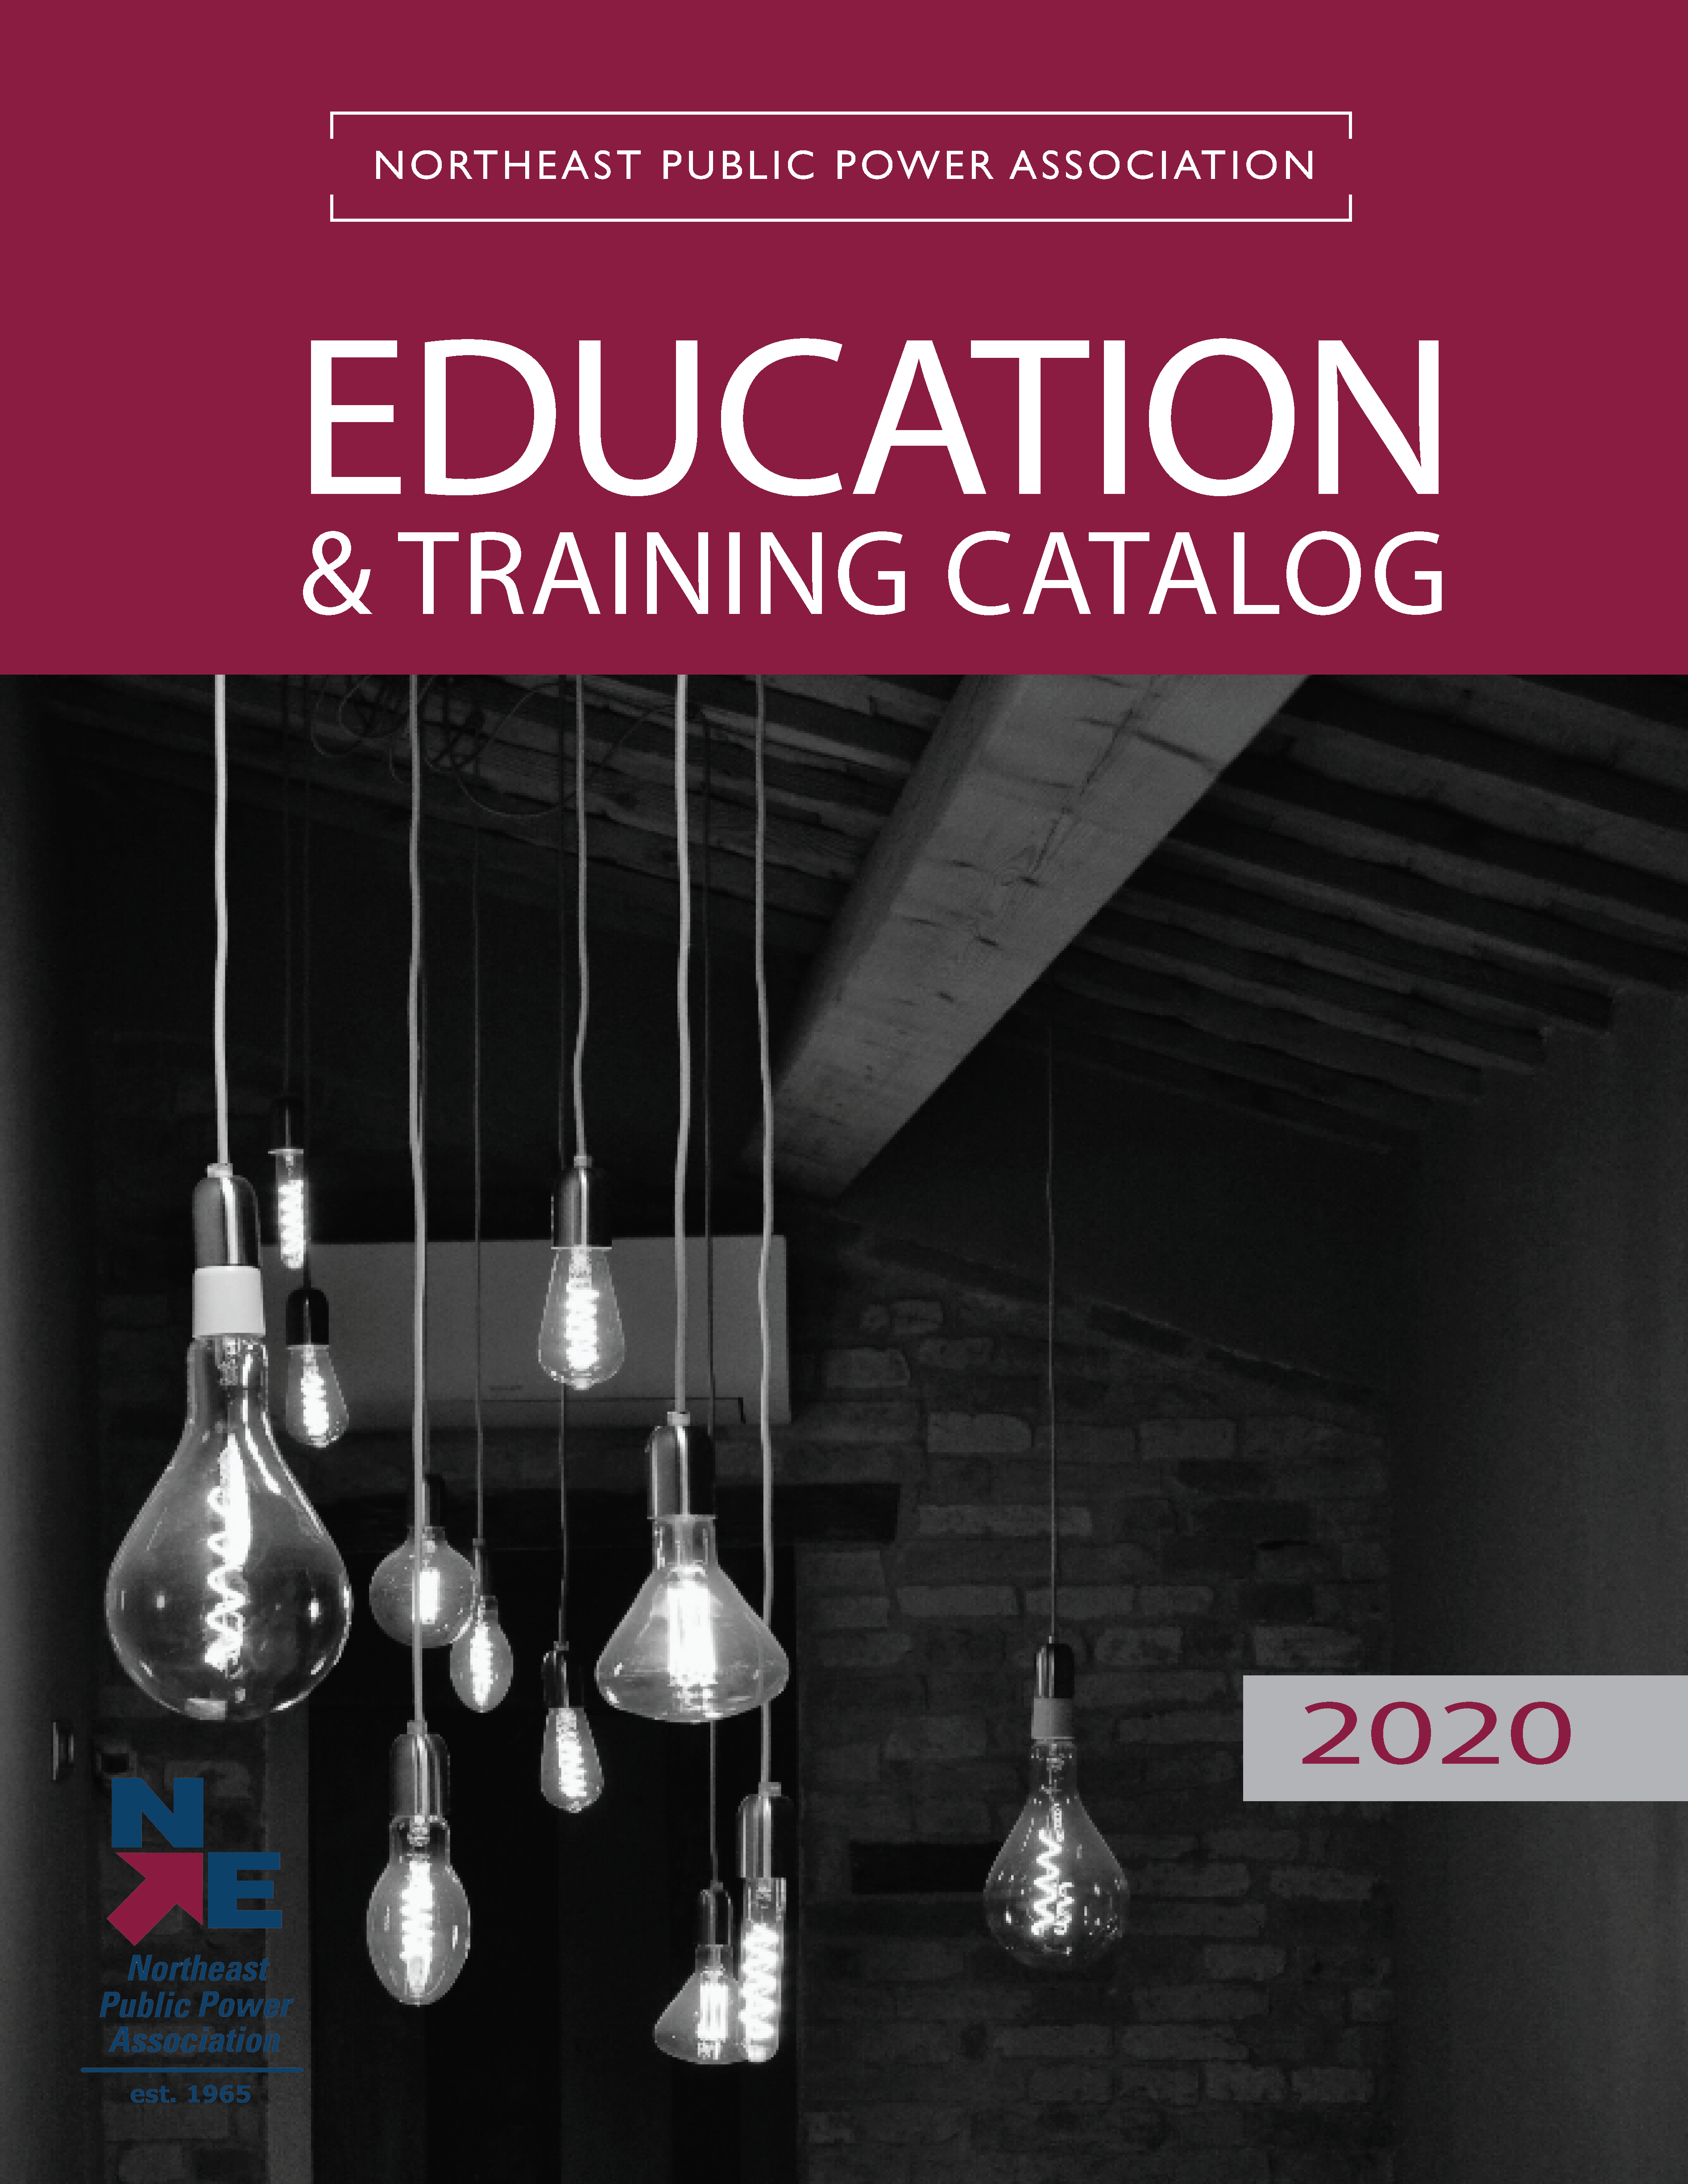 2019 NEPPA Education Training Catalog Cover